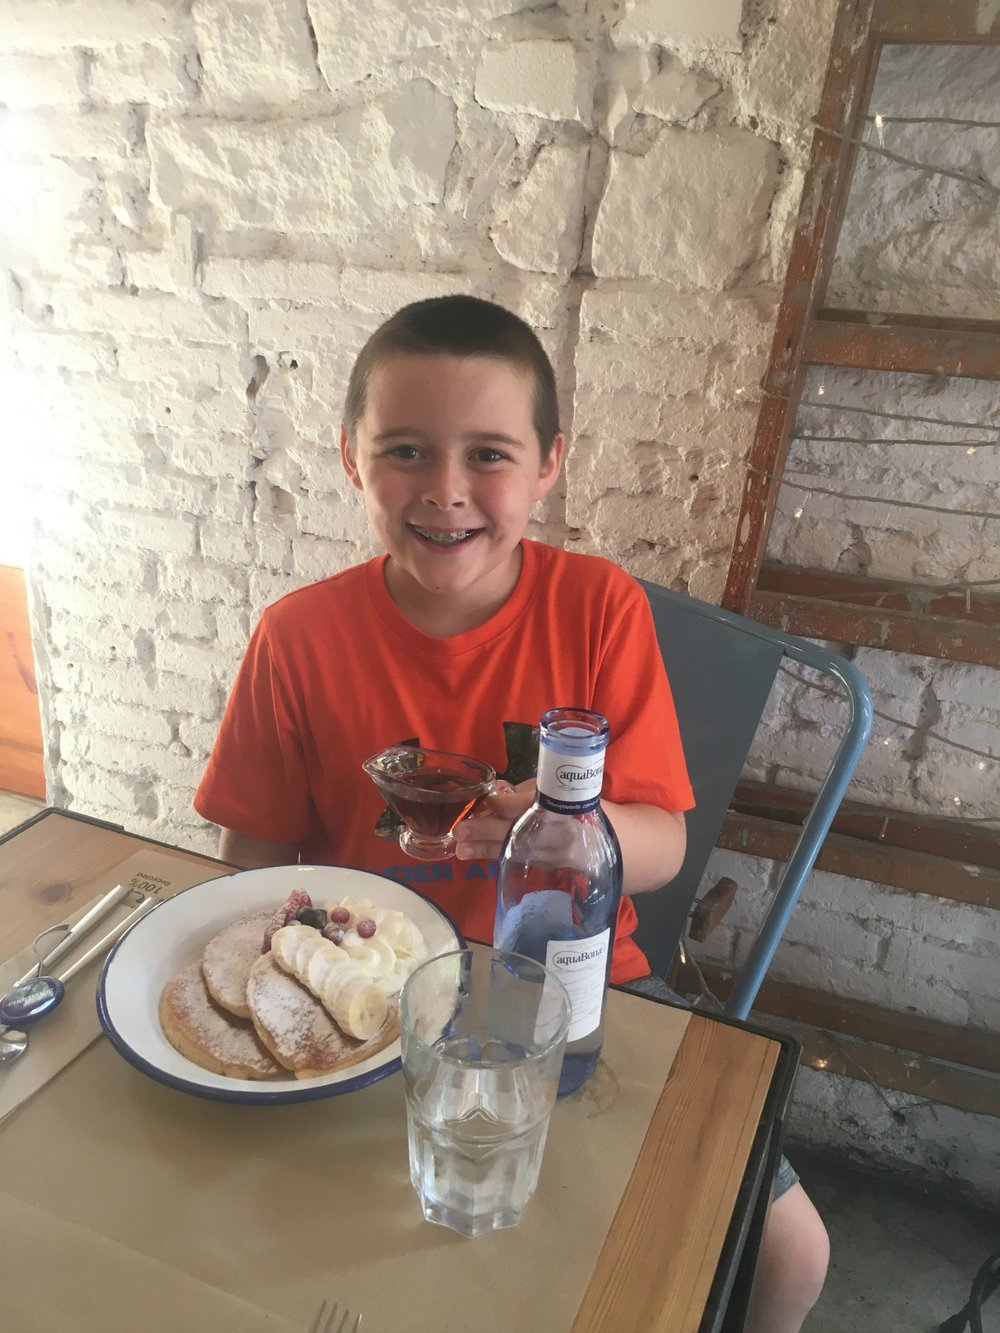 The 9-year-old loving his sugar-dusted pancakes